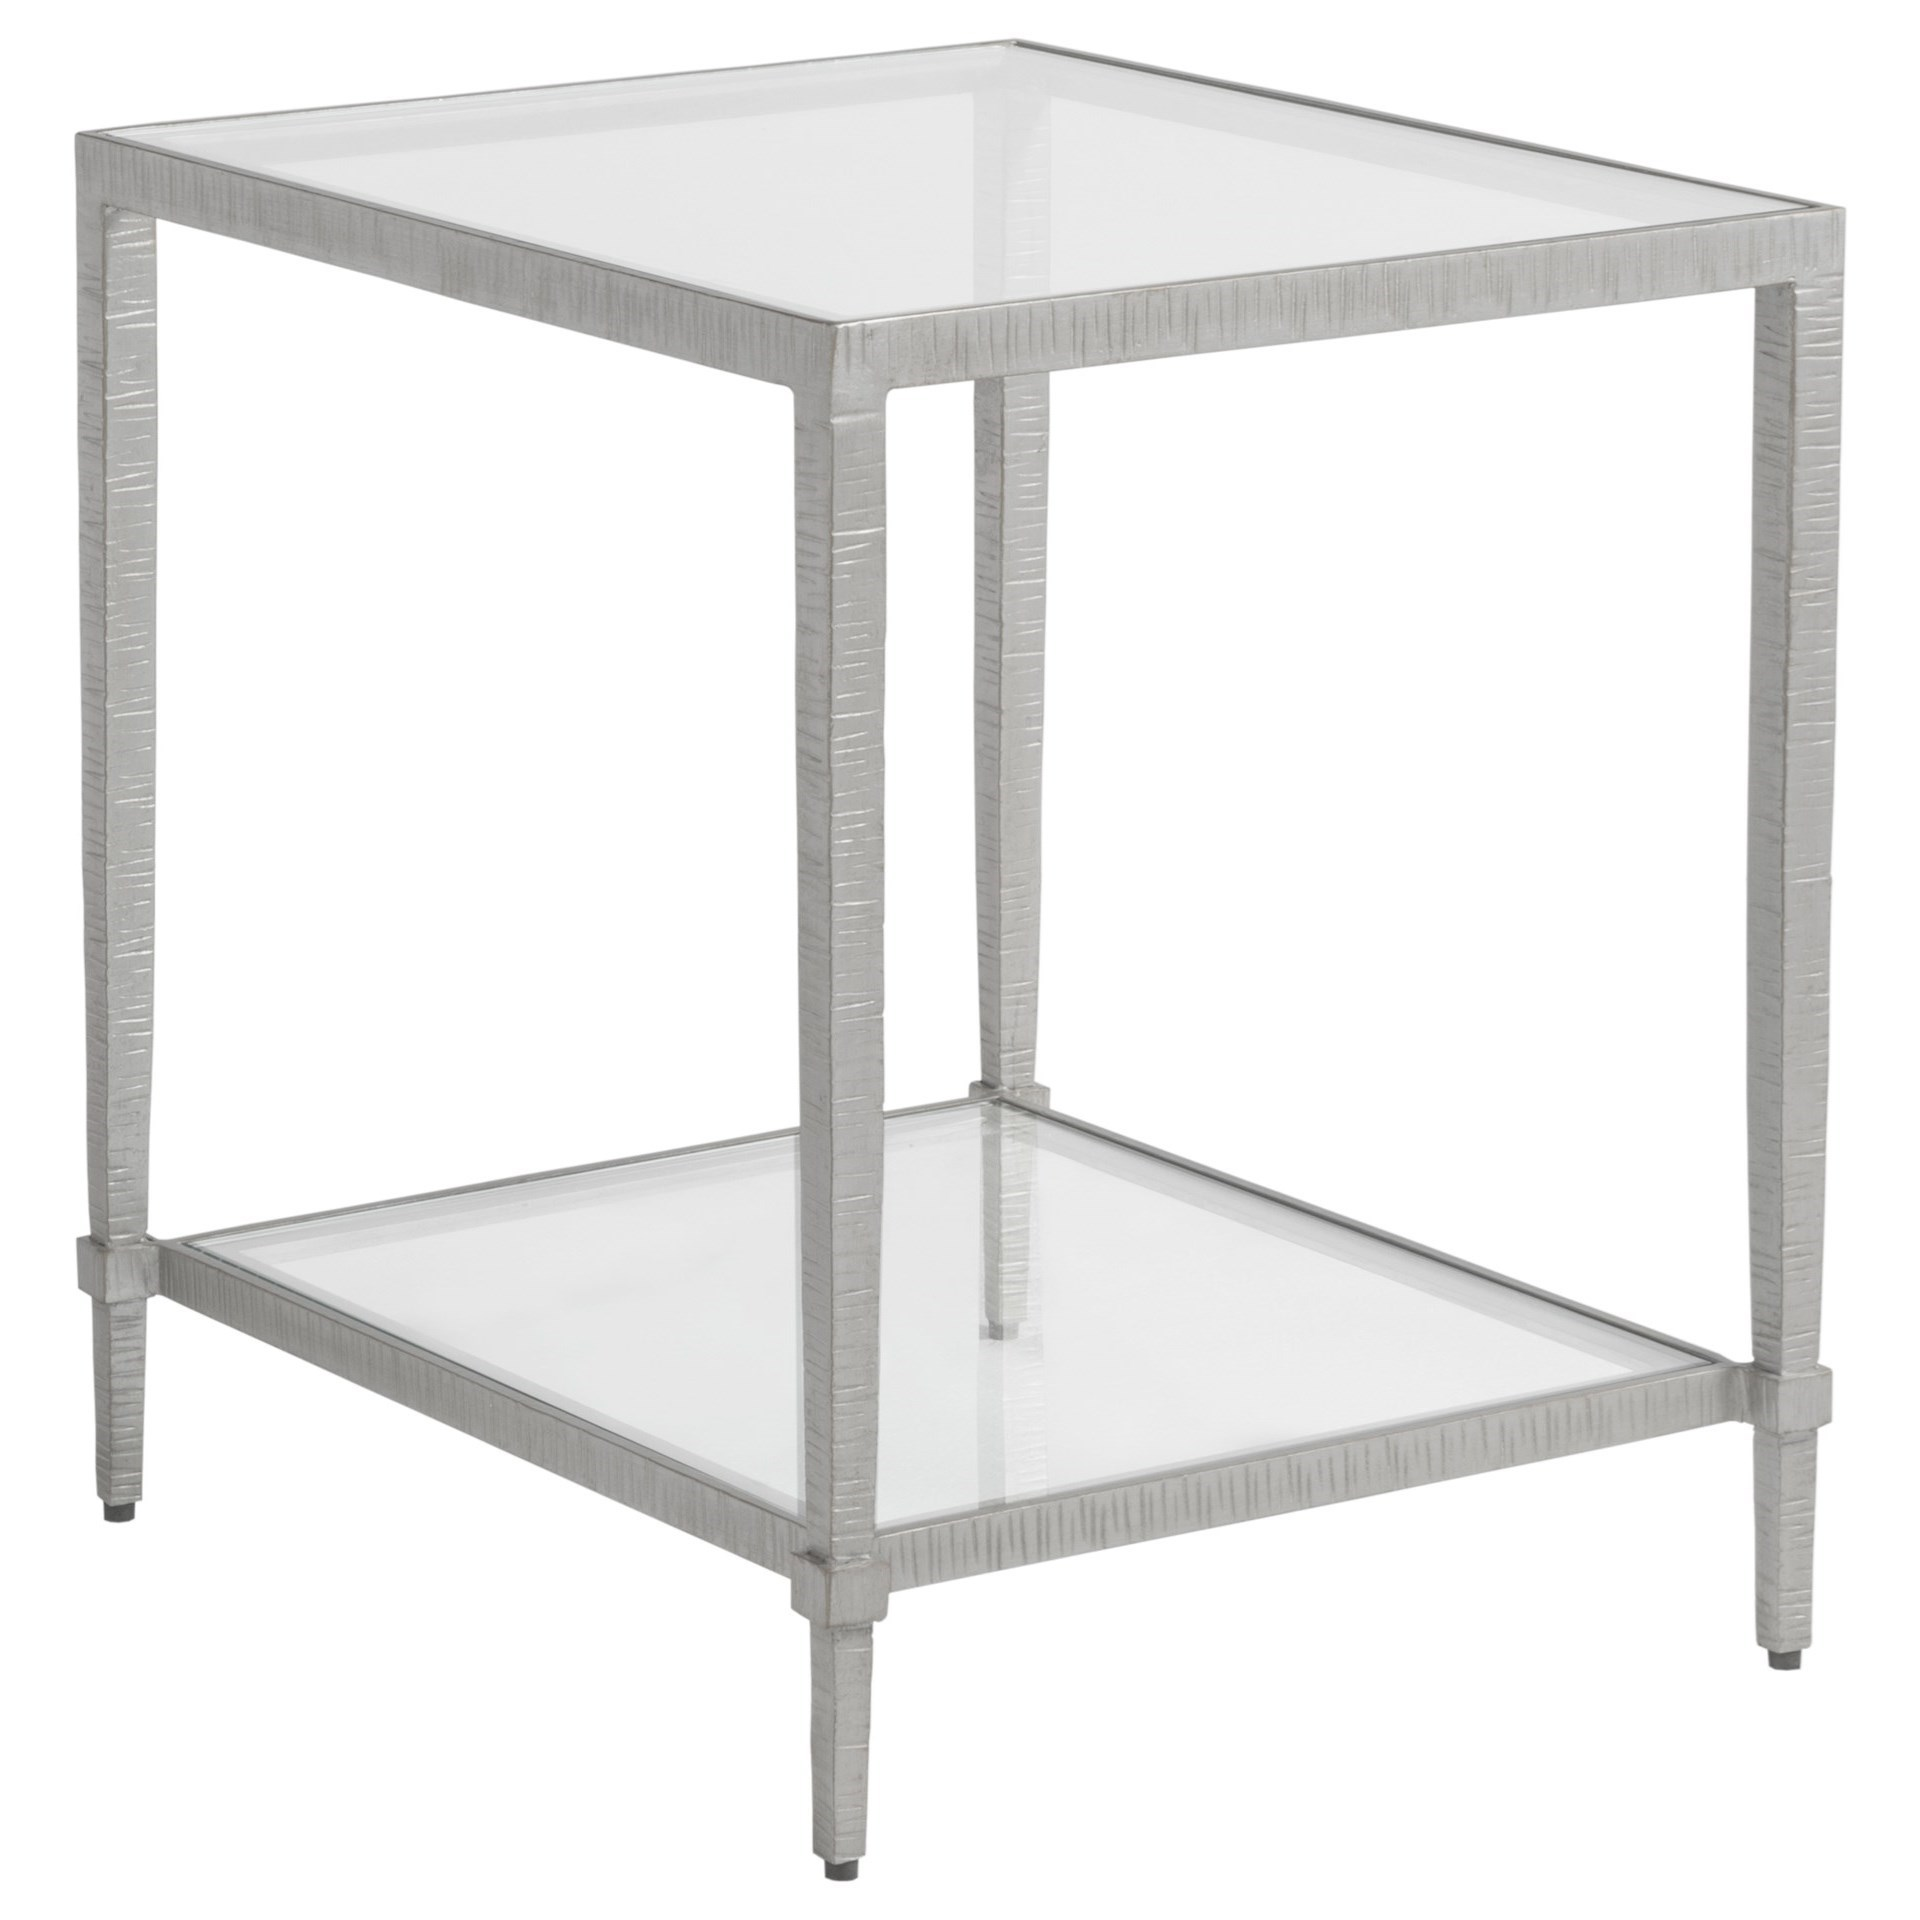 Metal Designs Claret Rectangular End Table by Artistica at Baer's Furniture